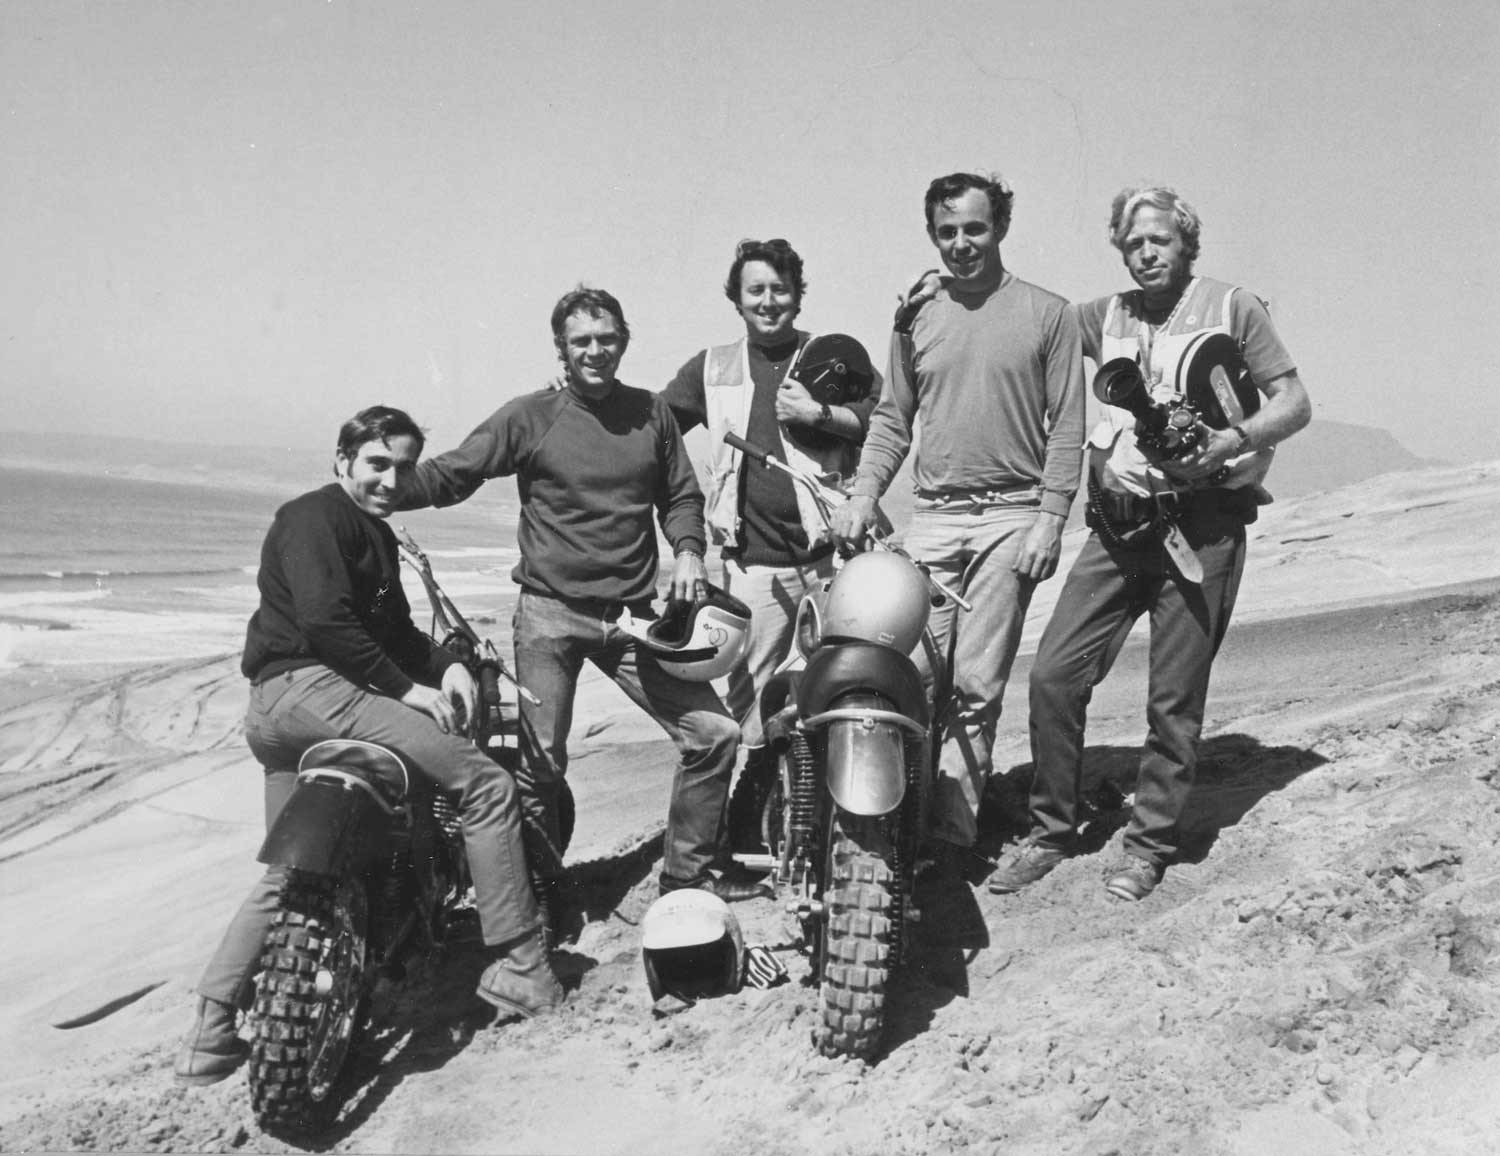 With On Any Sunday colleagues, from left Mert Lawwill, Steve McQueen, Bog Bagley, Malcolm Smith and Bruce Brown. Courtesy Bruce Brown Films LLC.